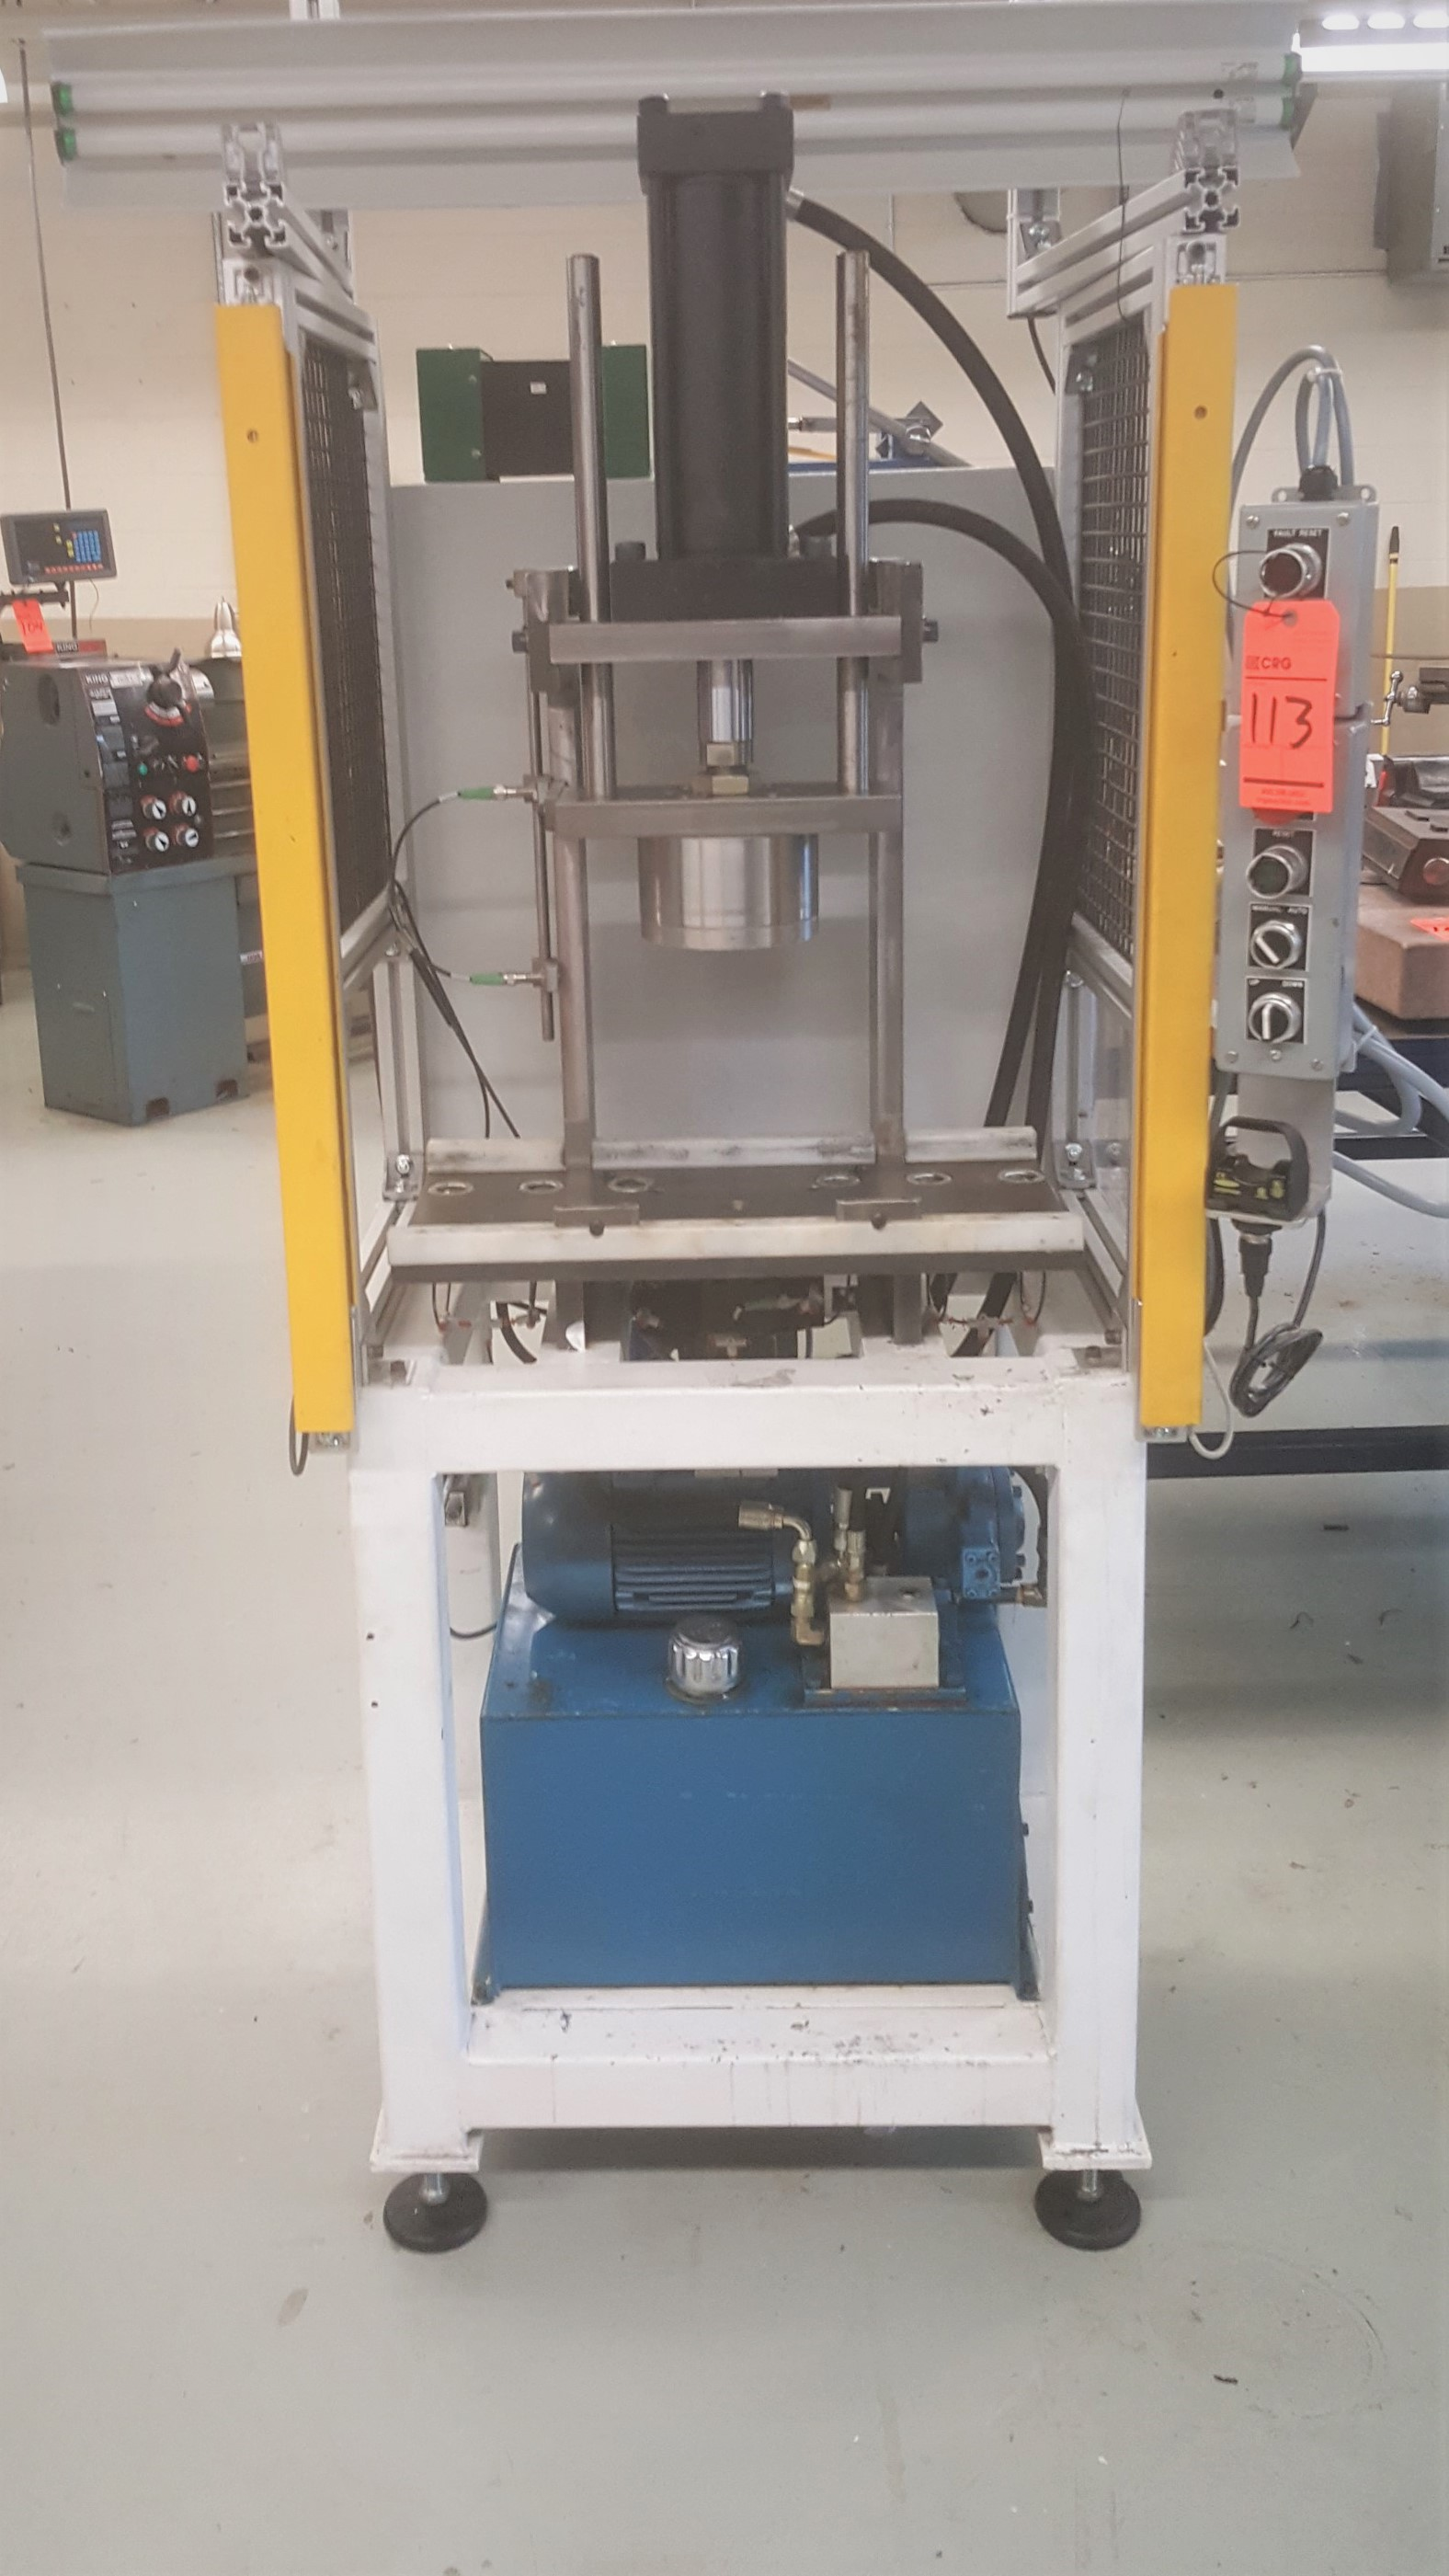 Lot 113 - 4-post hydraulic press with safety light curtain